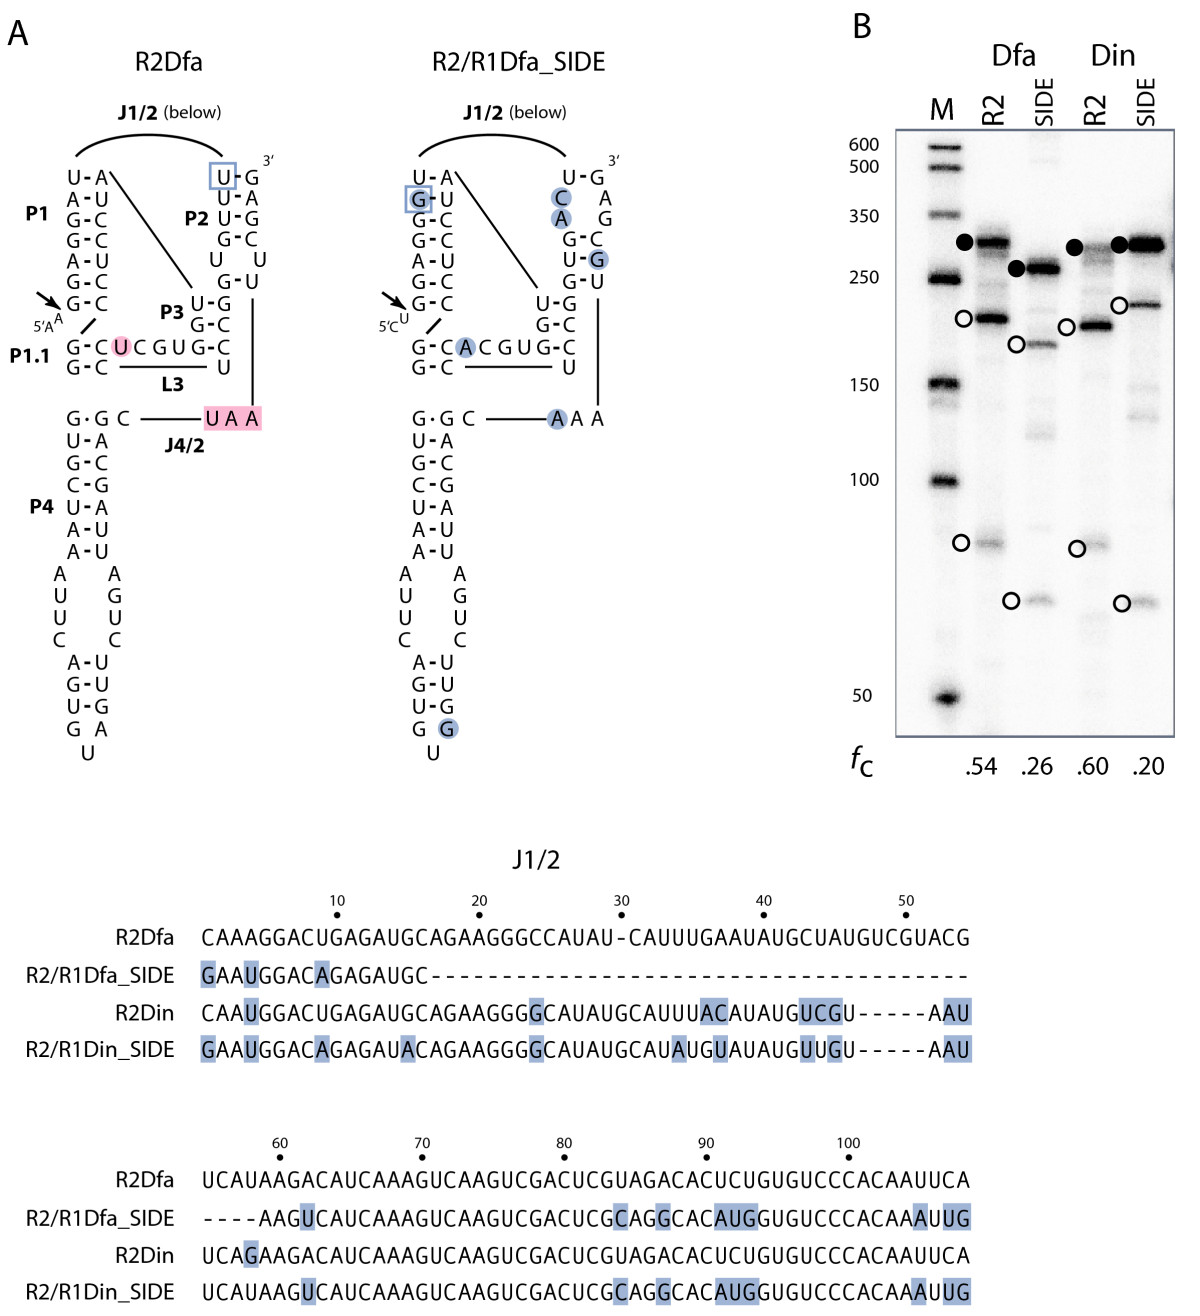 http://static-content.springer.com/image/art%3A10.1186%2F1759-8753-3-10/MediaObjects/13100_2012_Article_50_Fig6_HTML.jpg